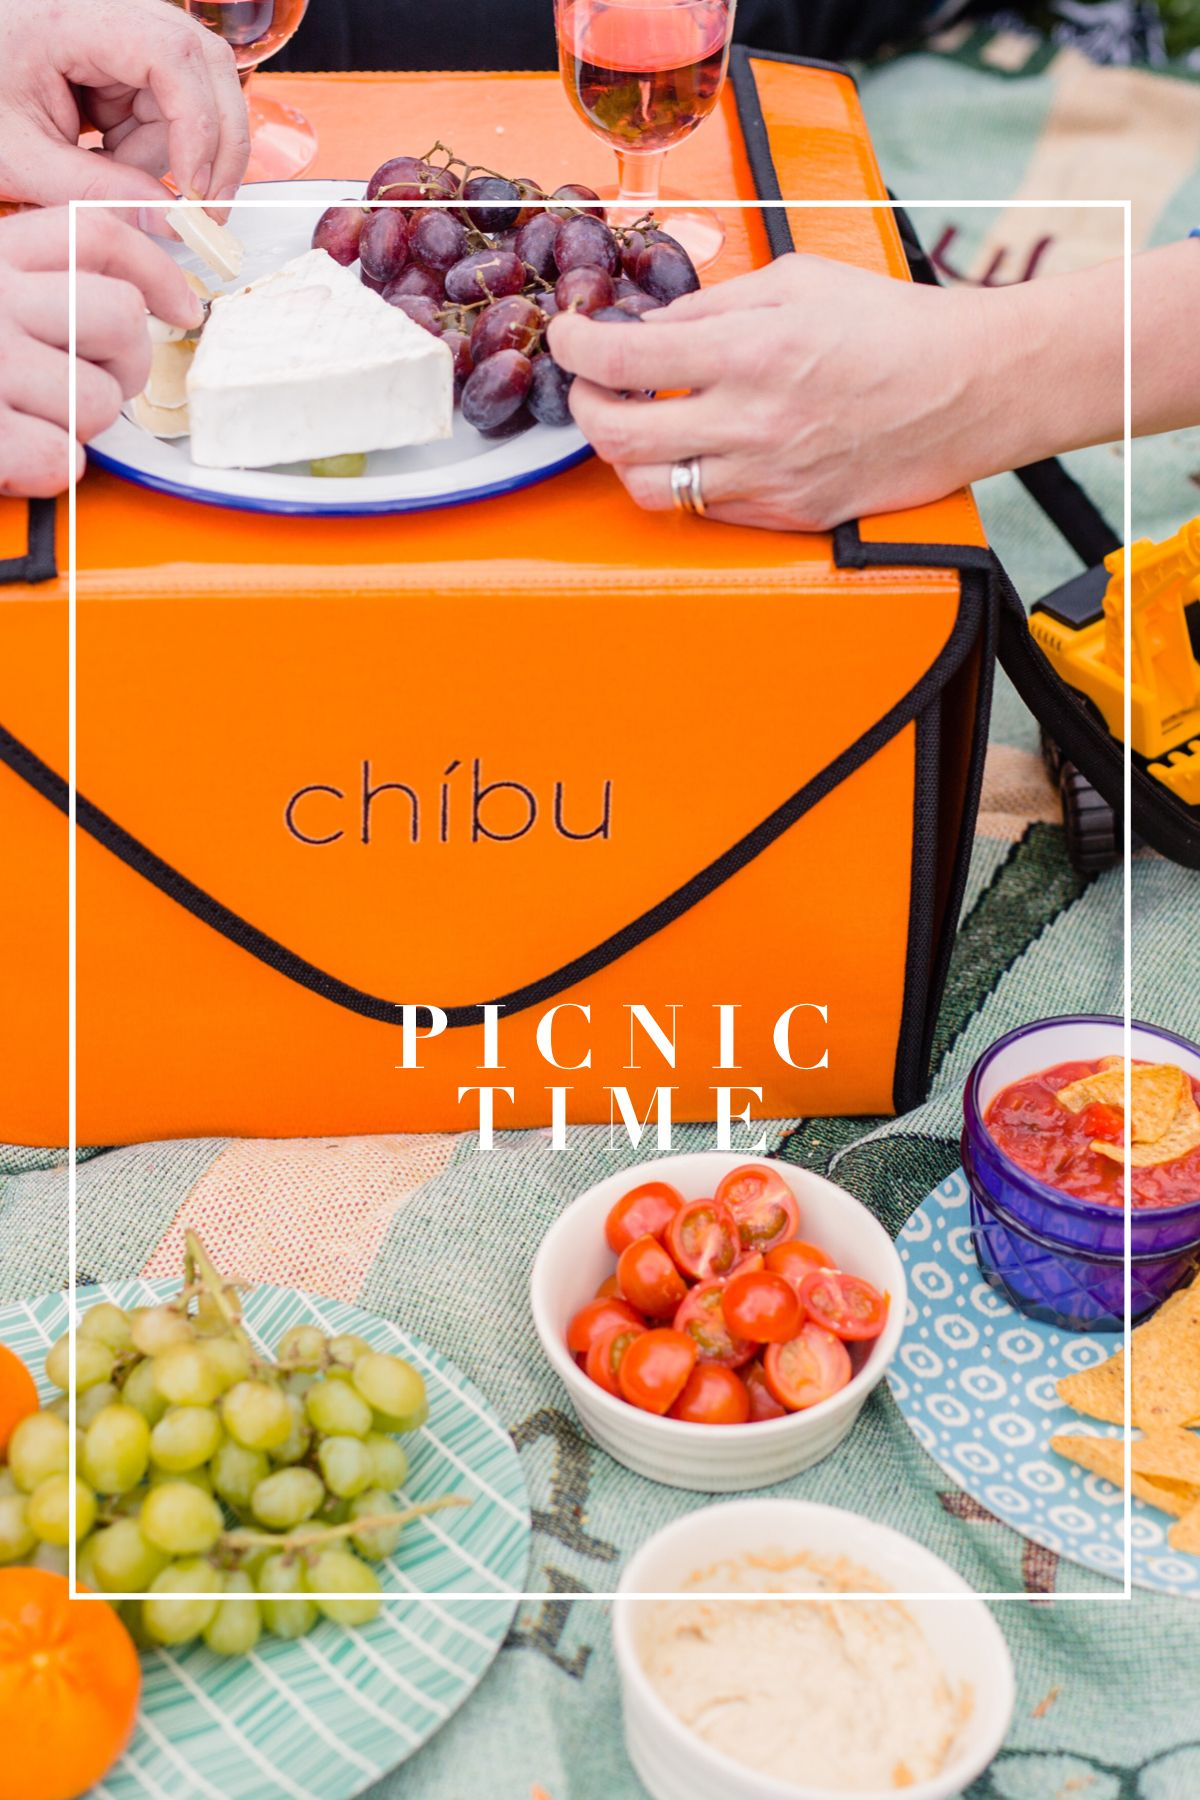 Chíbu carriers are great picnic baskets as well as a cake